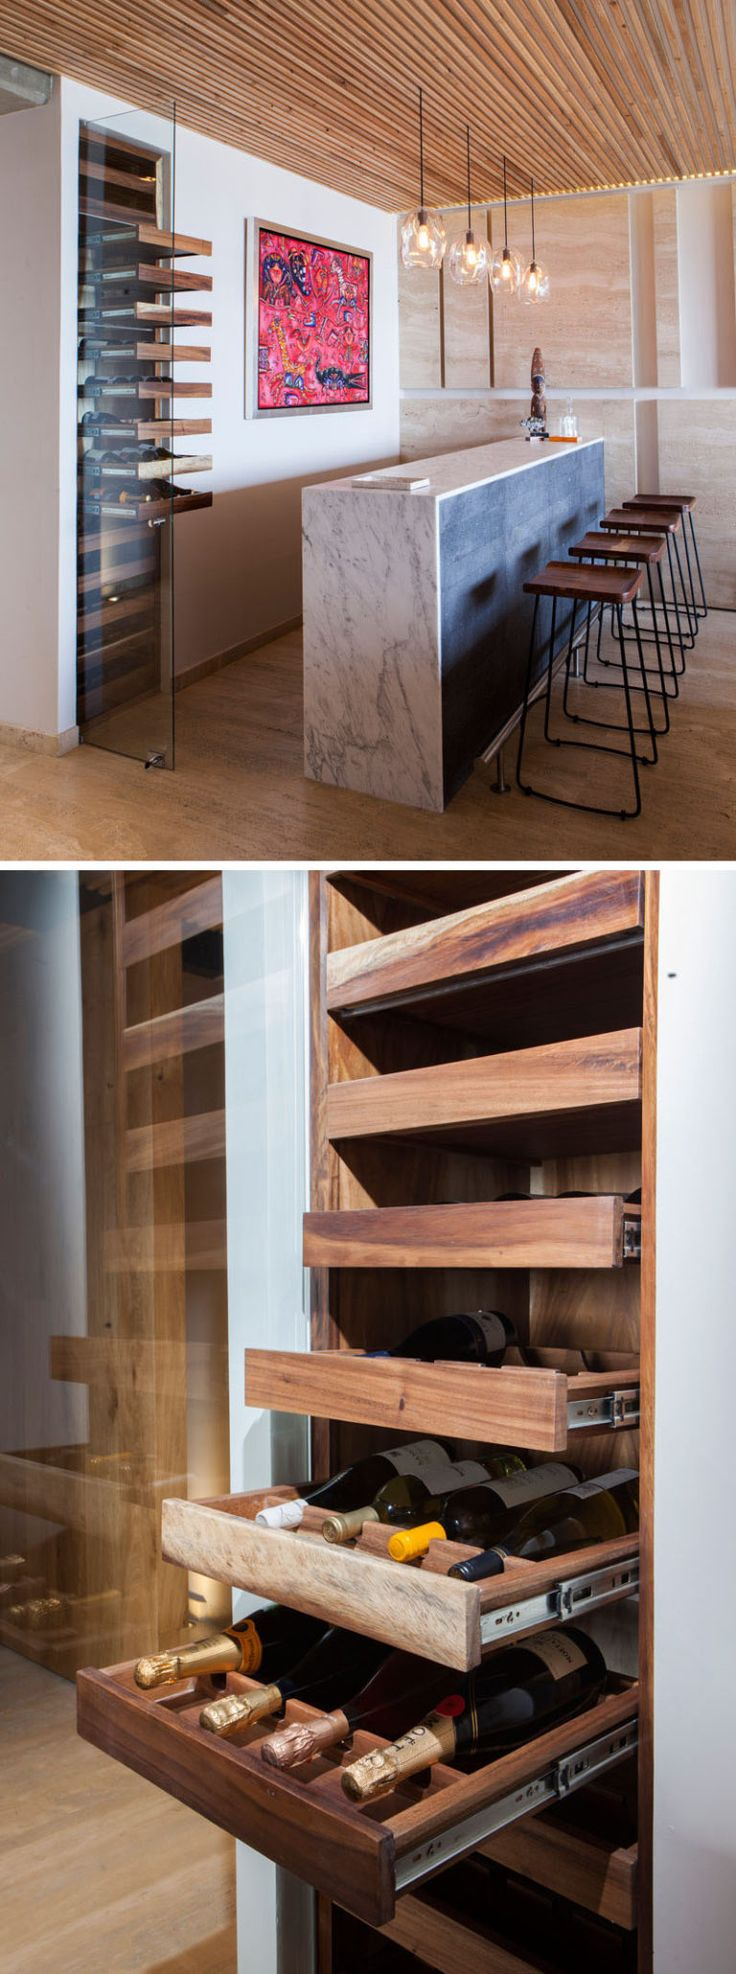 An Elegant Apartment With A Wood Slat Ceiling | CONTEMPORIST